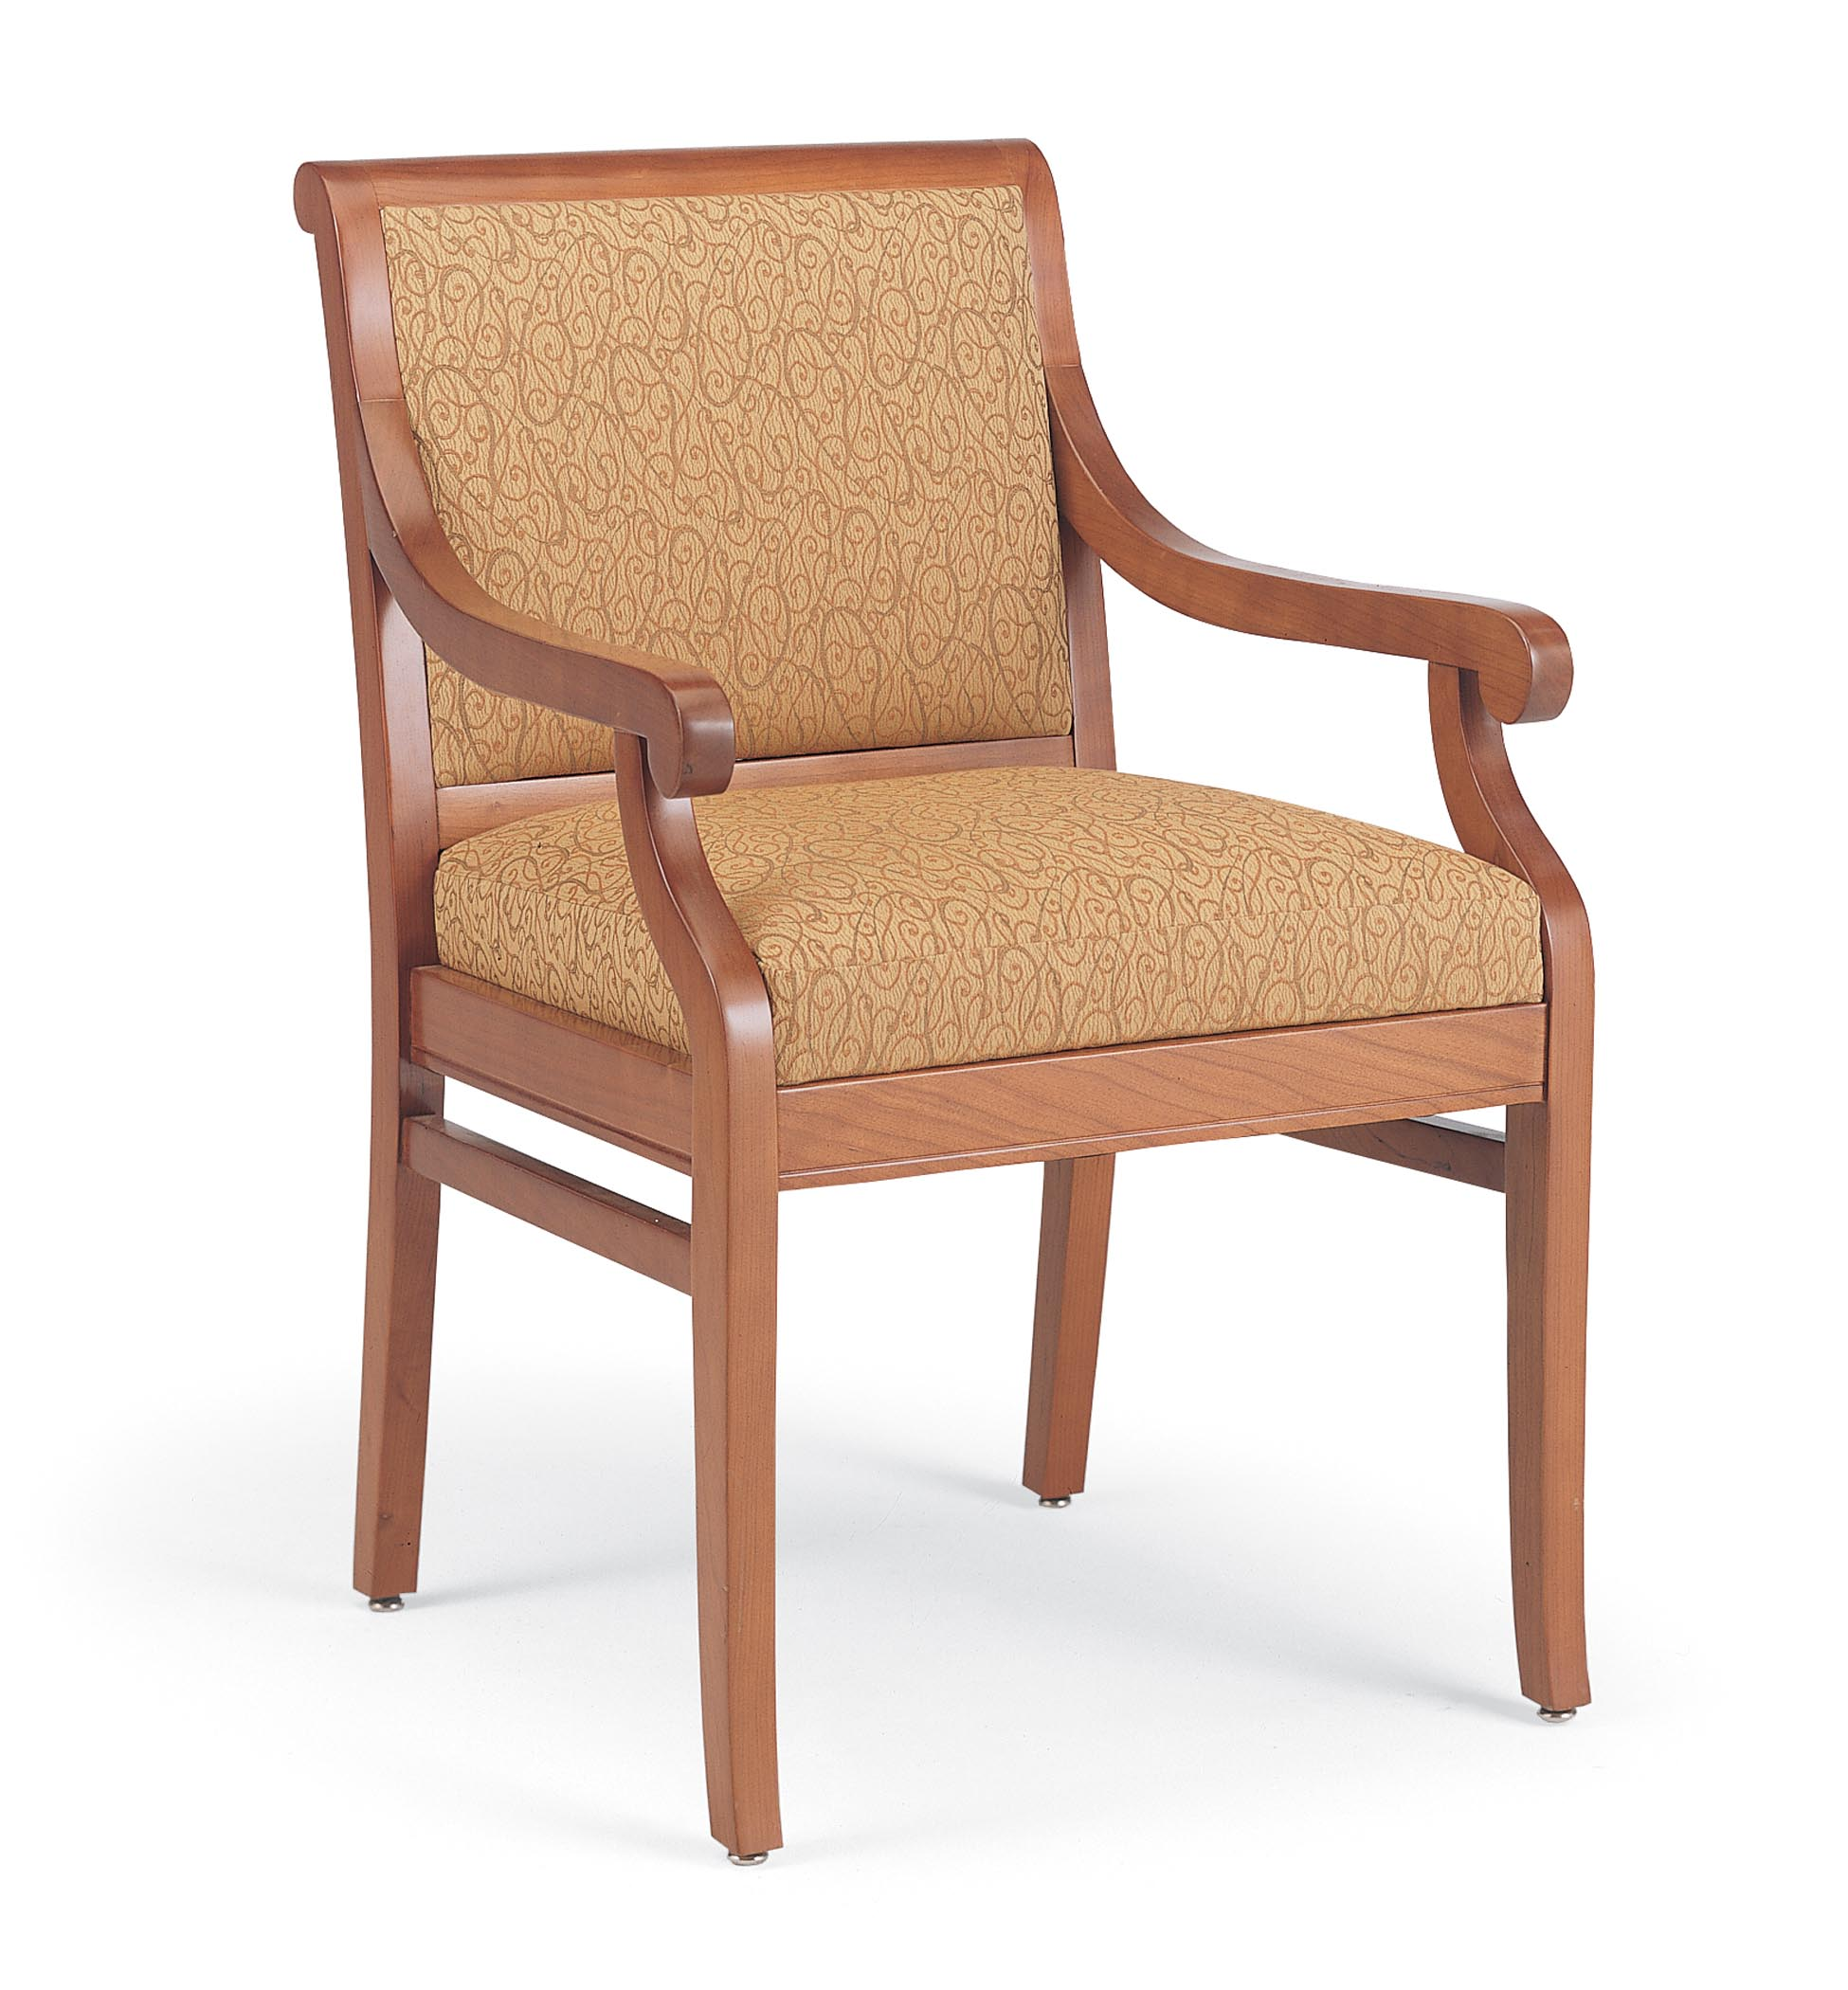 Wooden Chairs With Arms ~ Wood chairs with arms